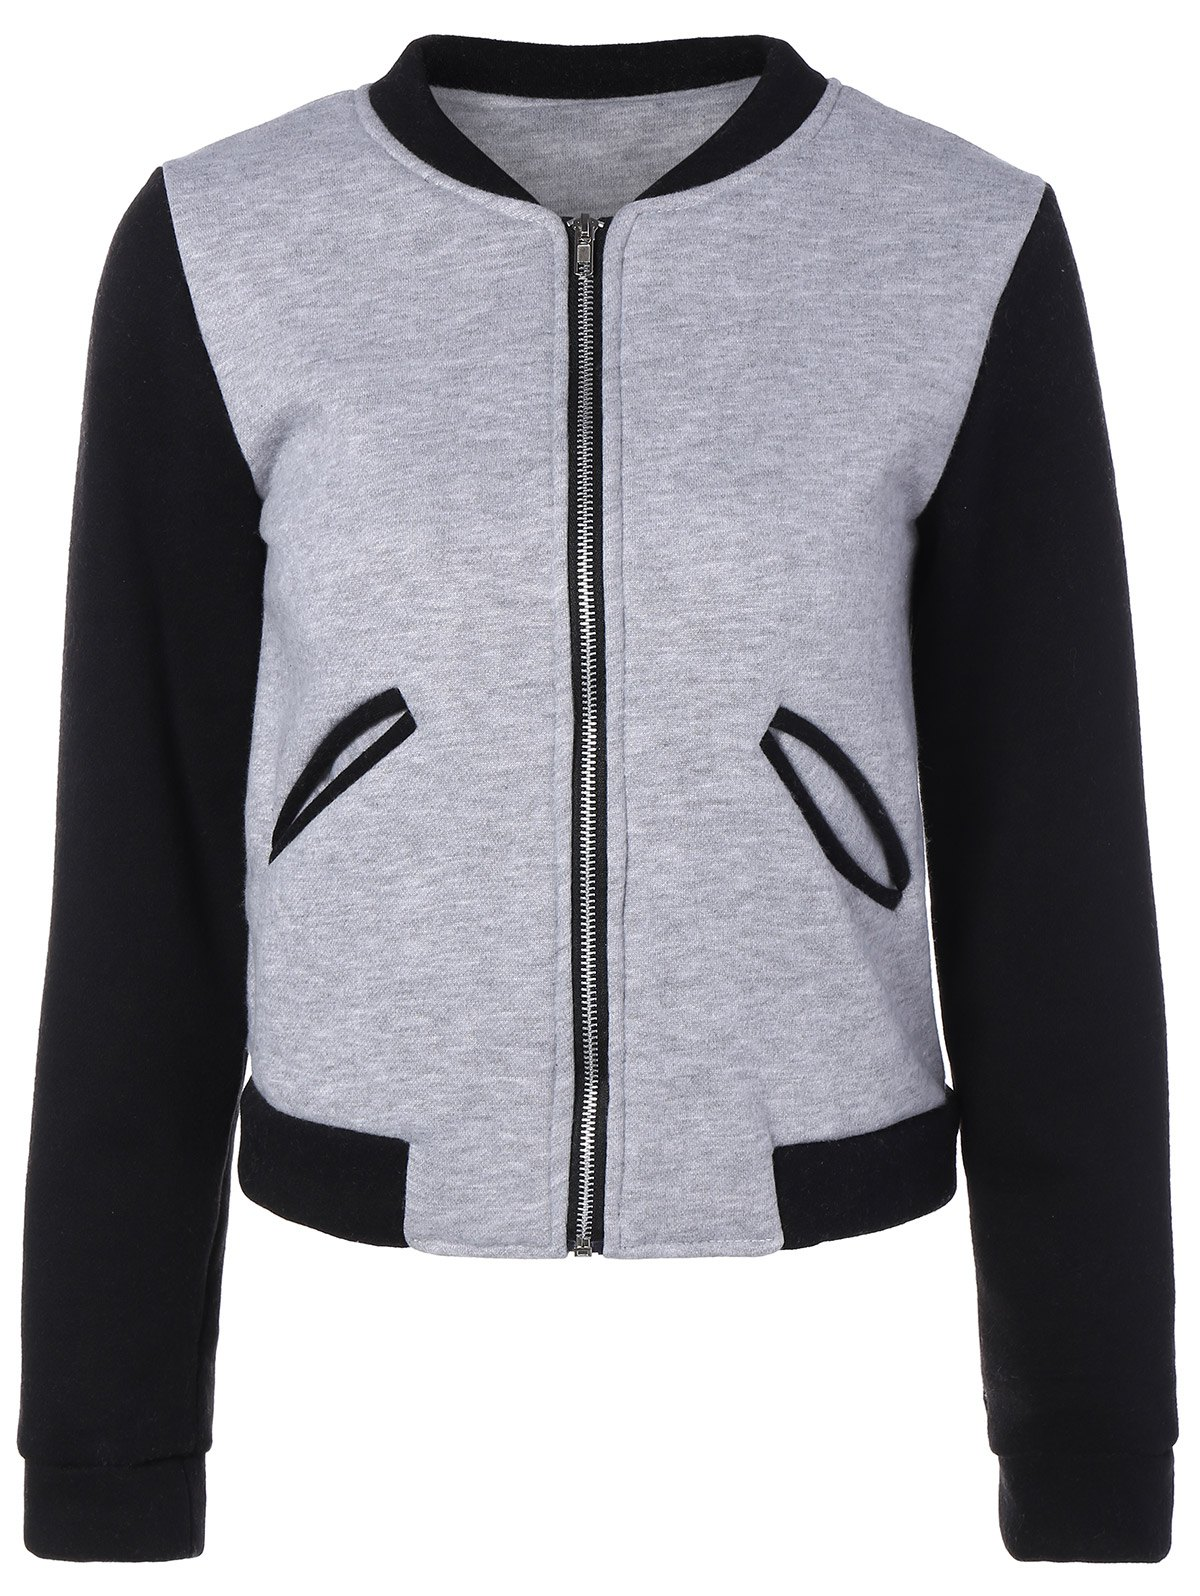 Zip Up Fleece Jacket - GRAY XL